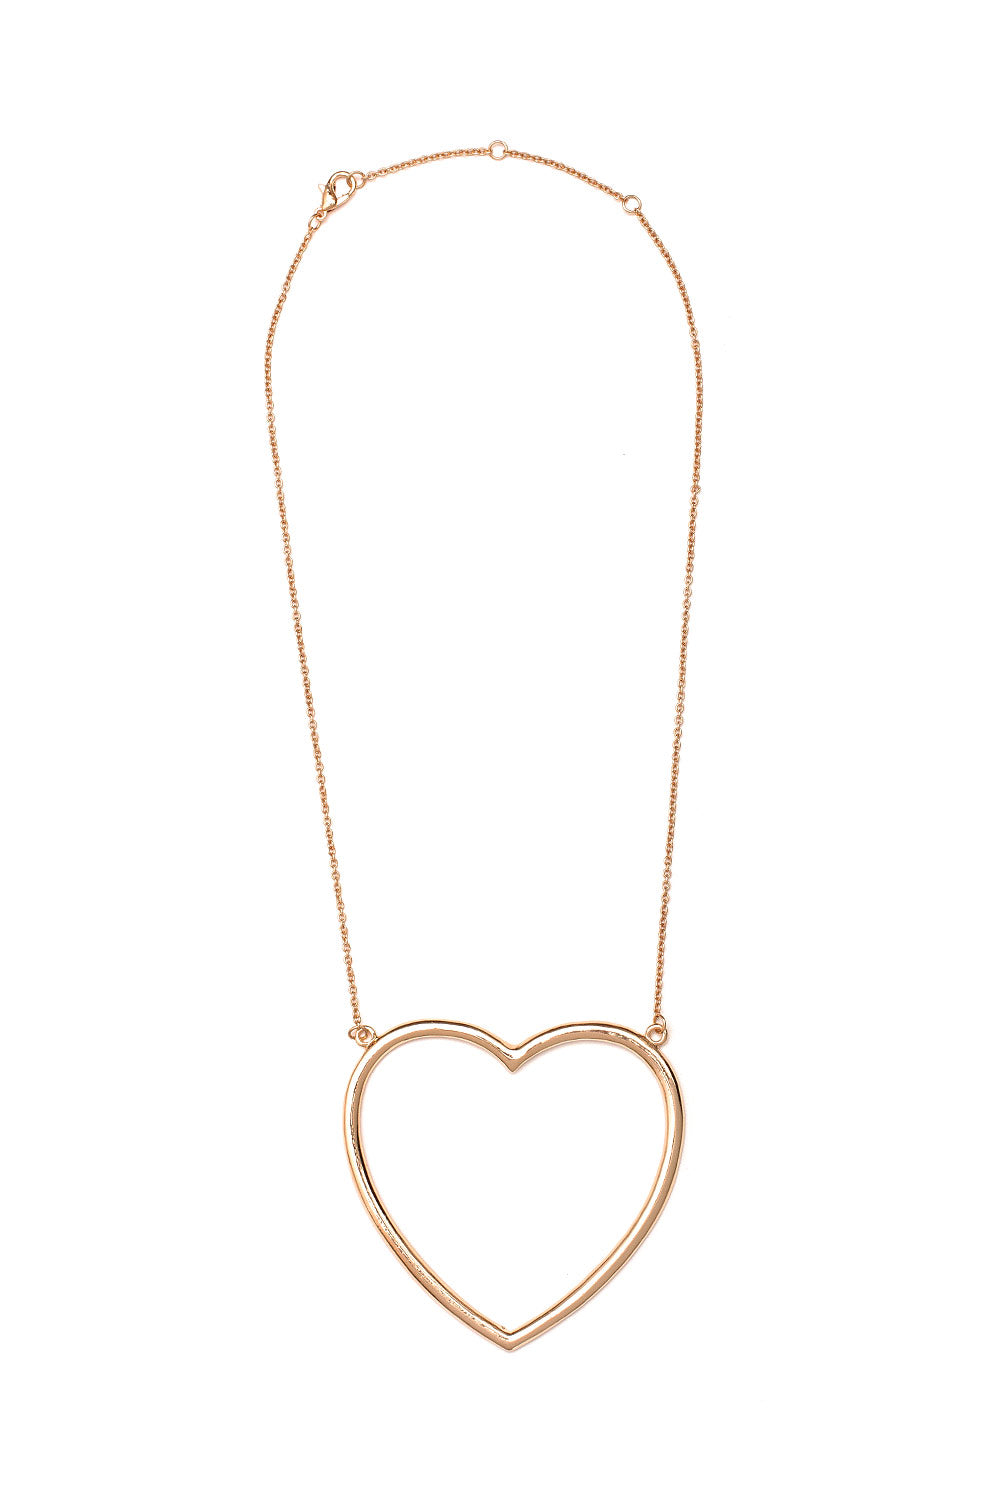 Type 1 Heart of Gold Necklace